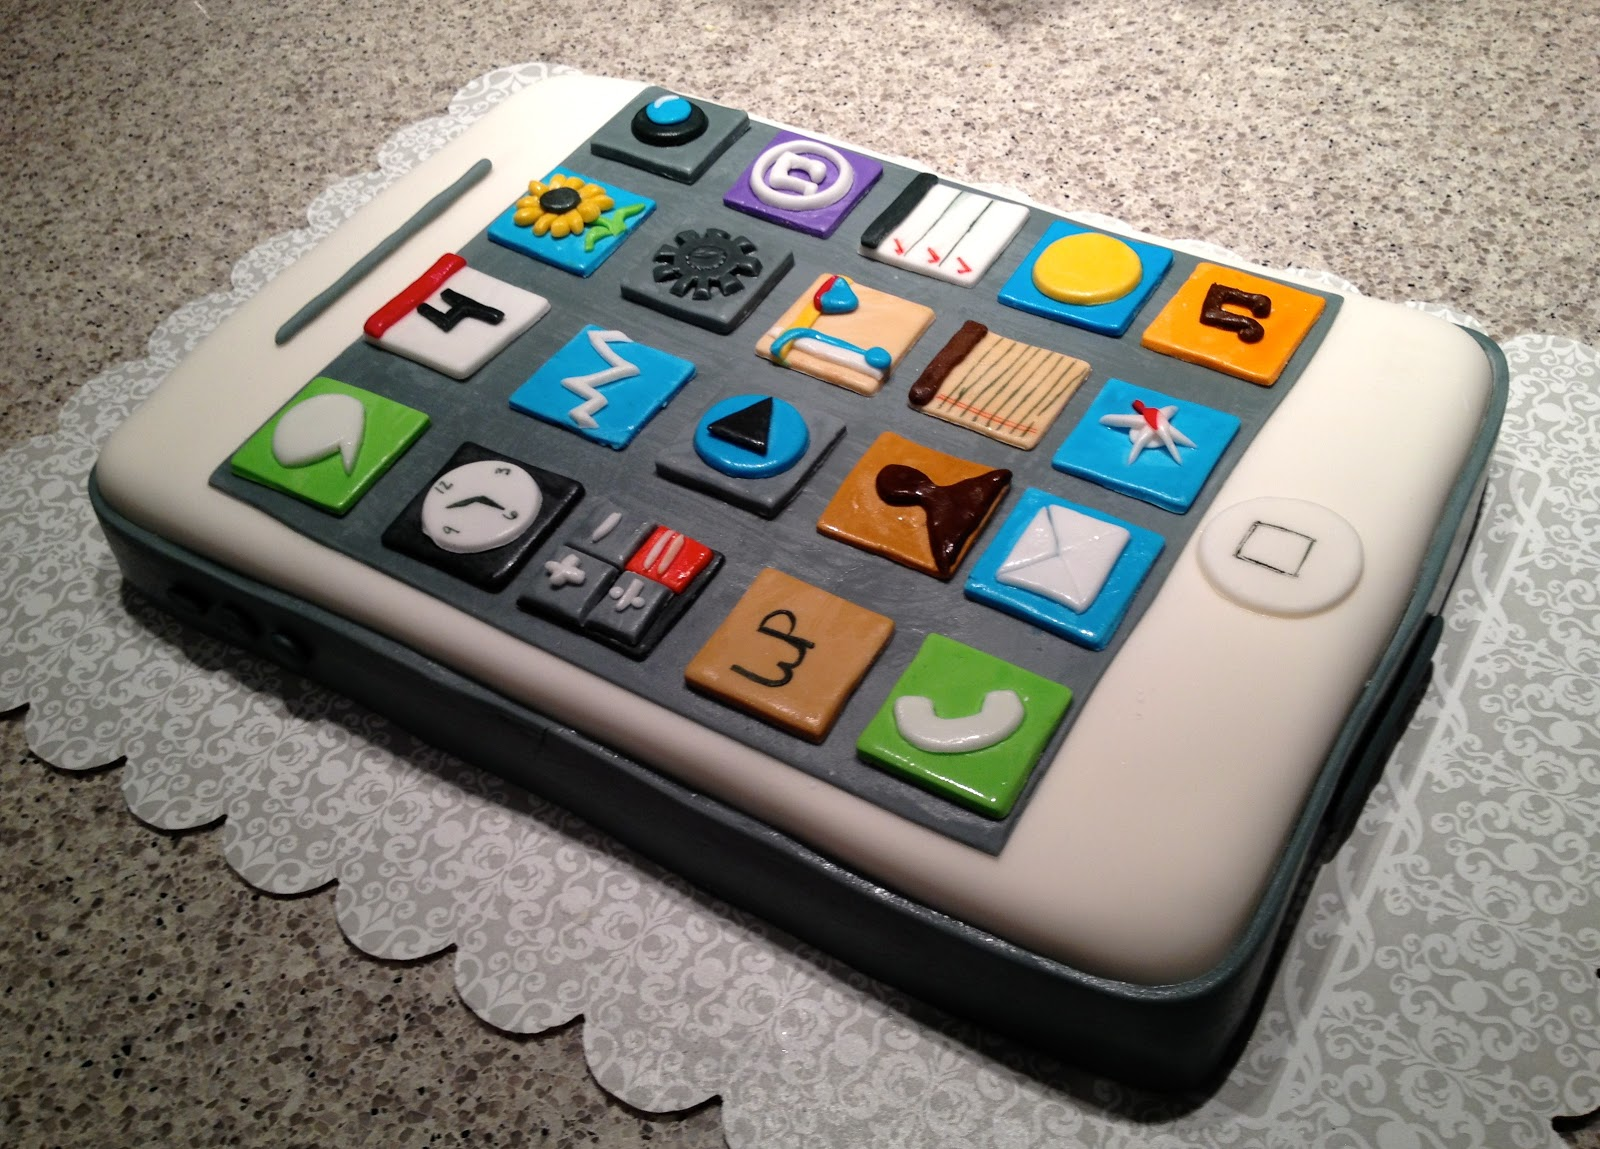 Cupcakes are the new black omg that 39 s an iphone cake lol for New app ideas for iphone